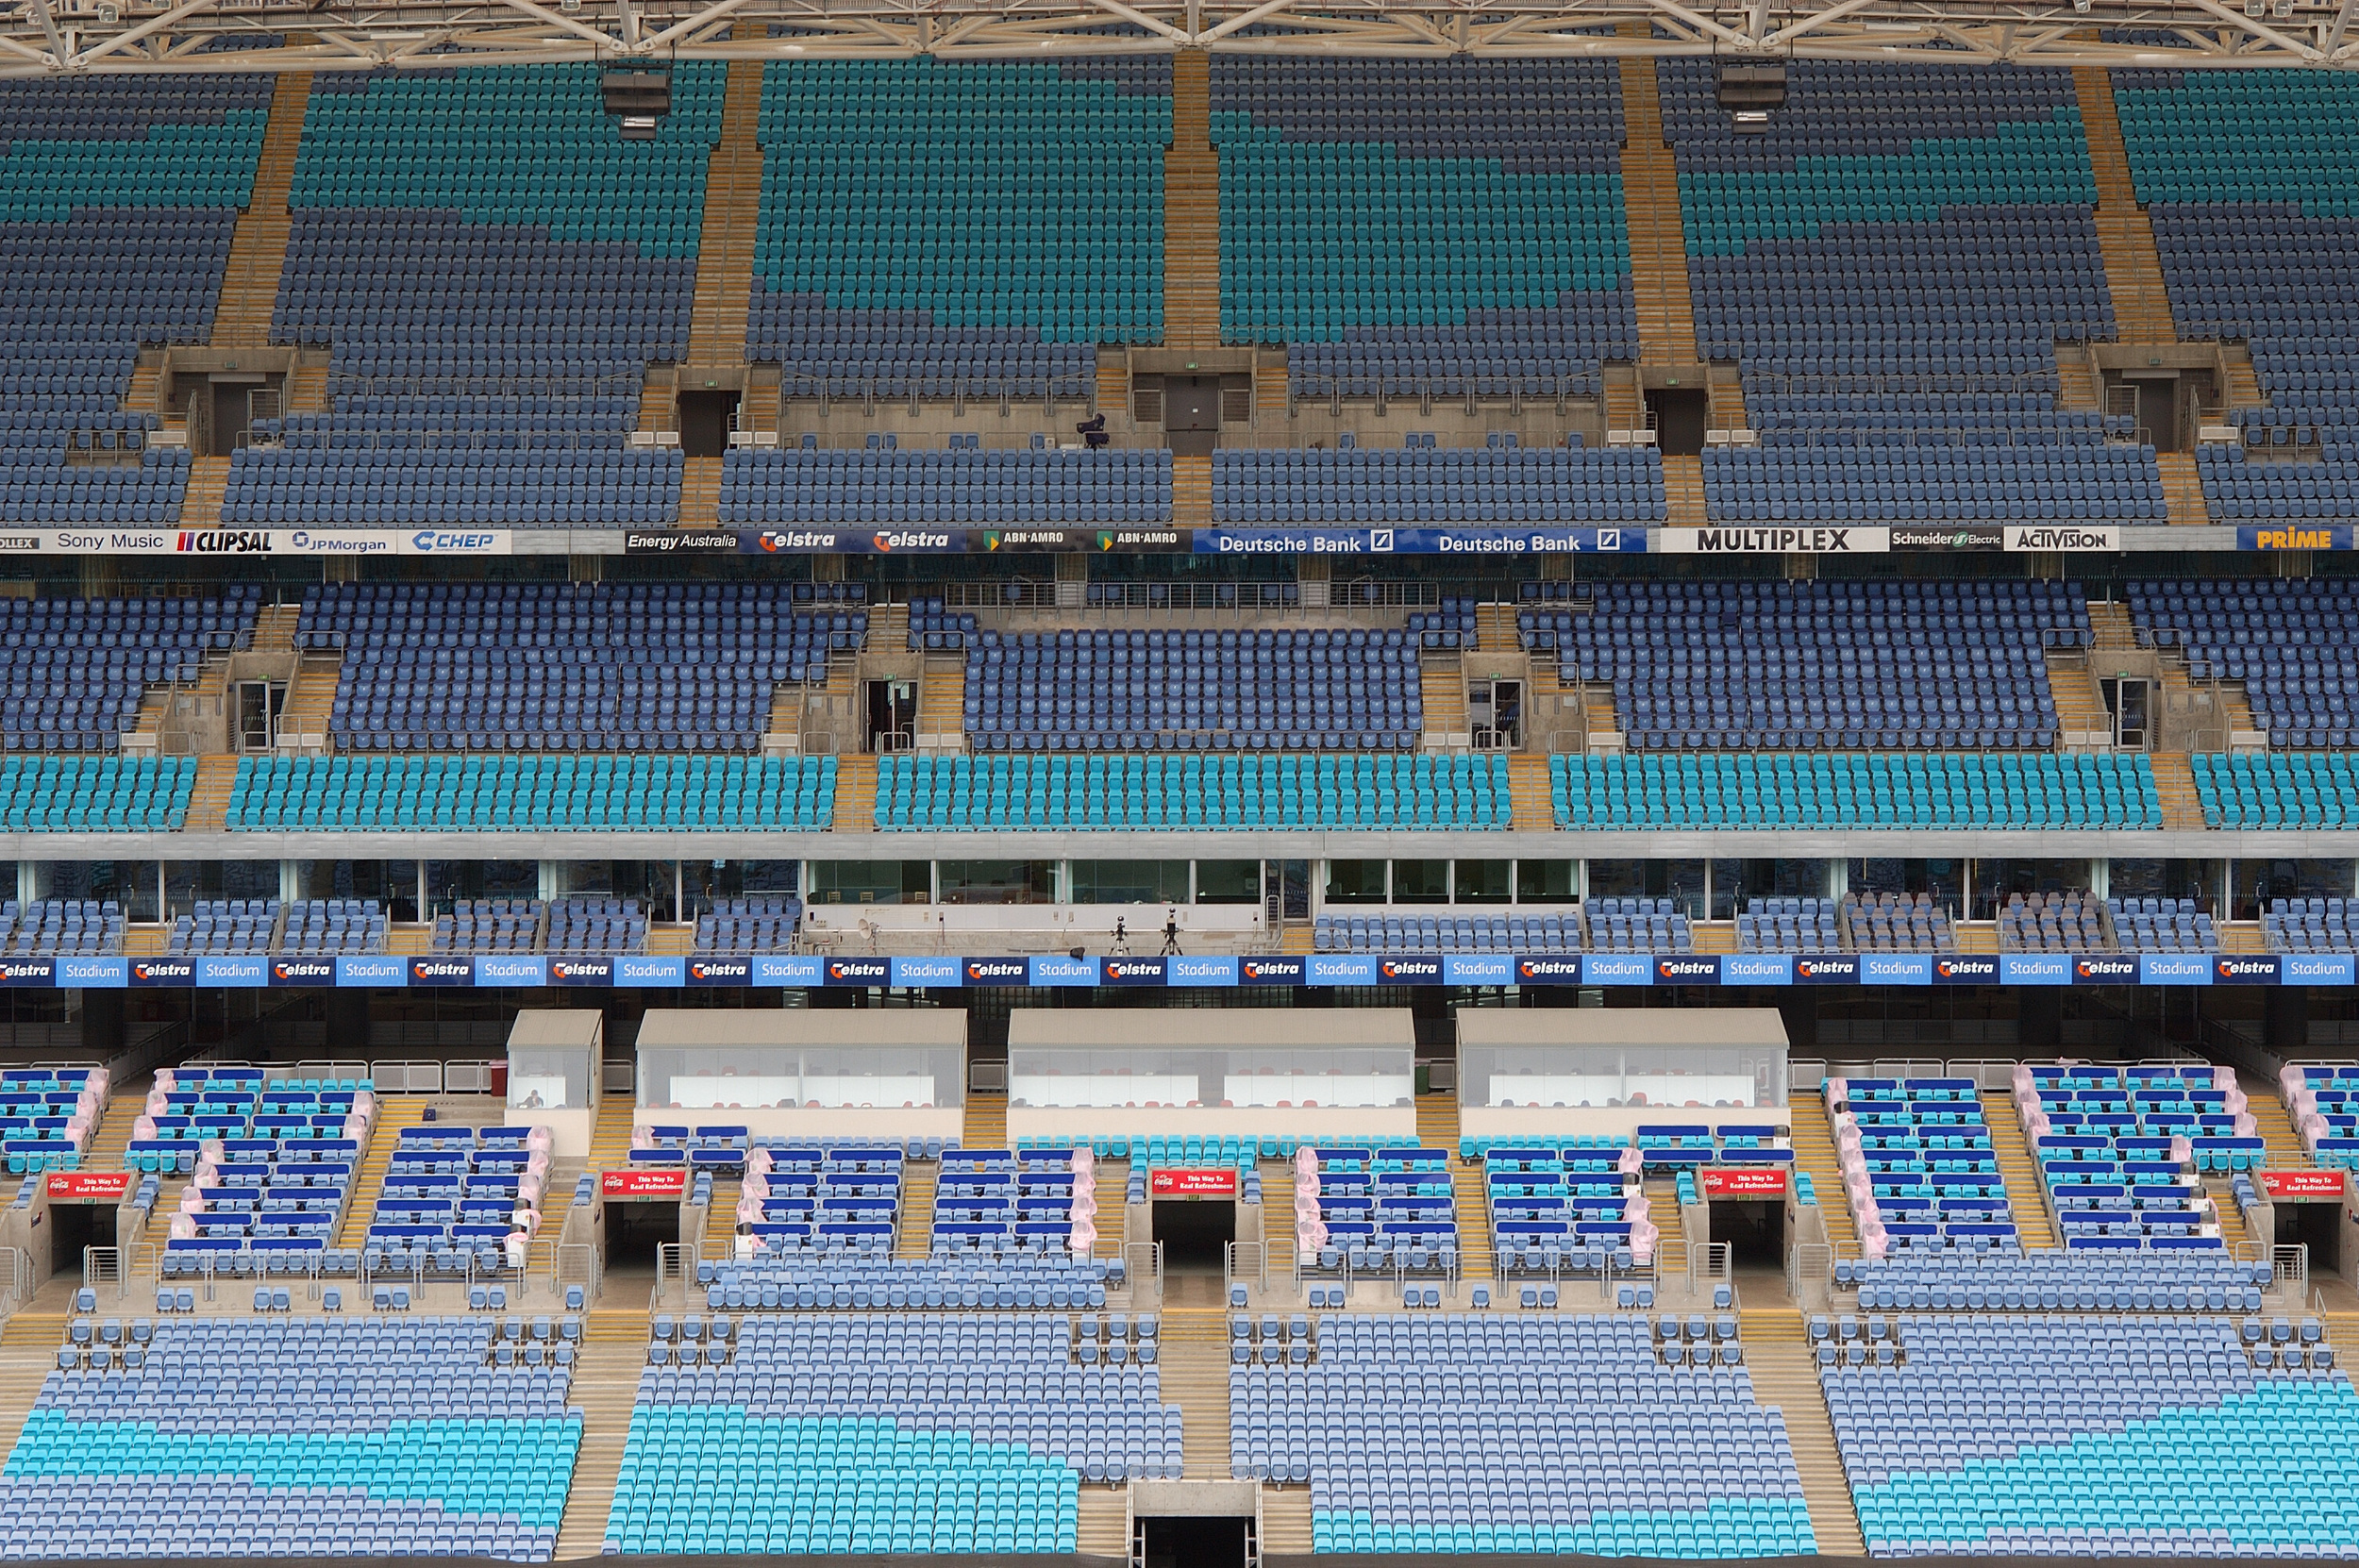 The stadium has seats designed to mimic waves as a nod to Australia's connection to the water as an island nation.